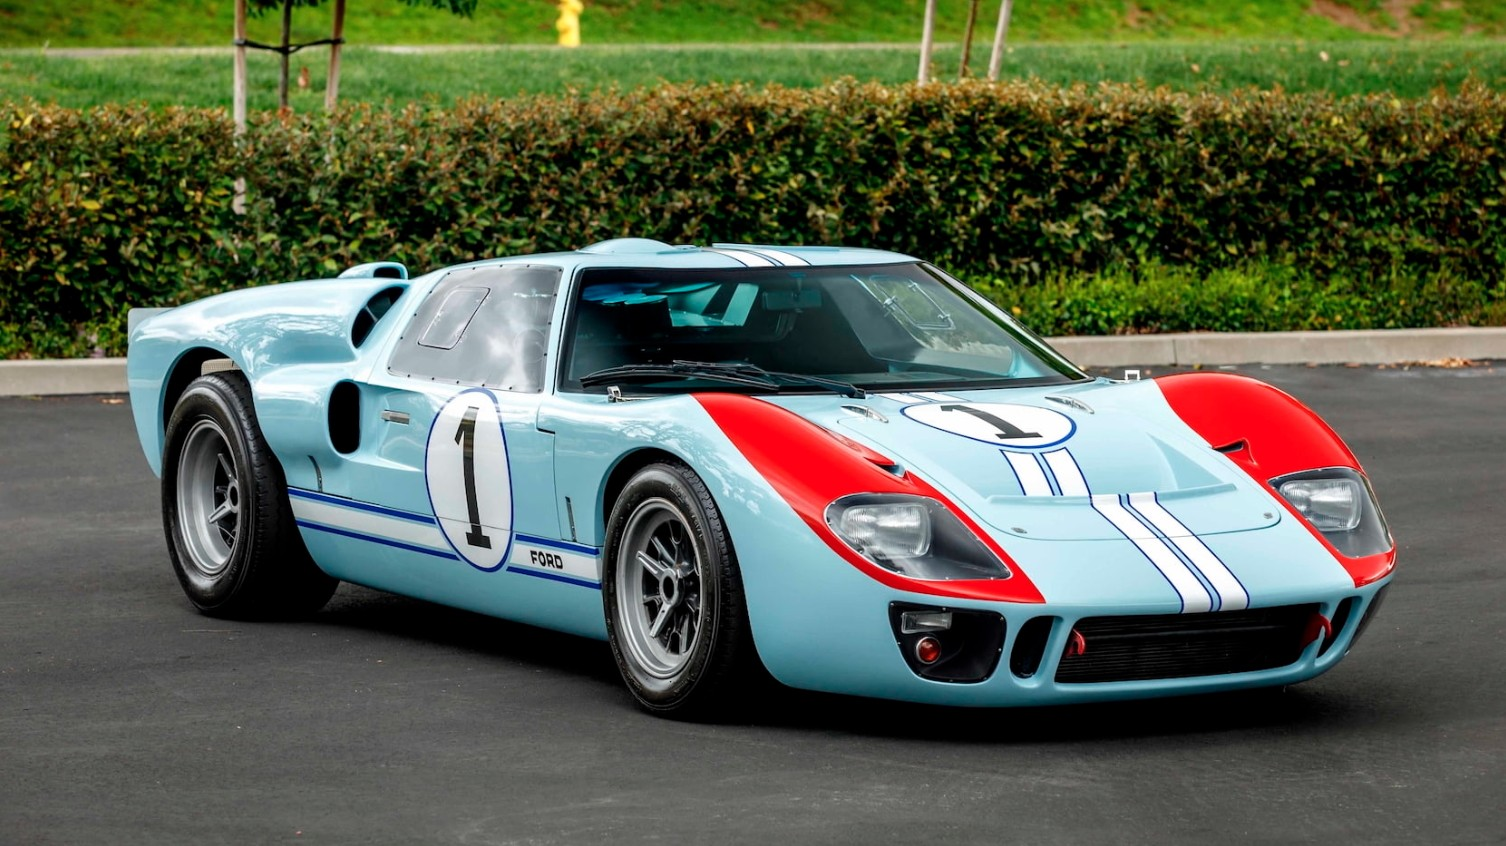 Mecum will be holding an auction in January 2020 dedicated to the modern replica of the classical Ford GT40 that Christian Bale used to drive in Ford vs. Ferrari.